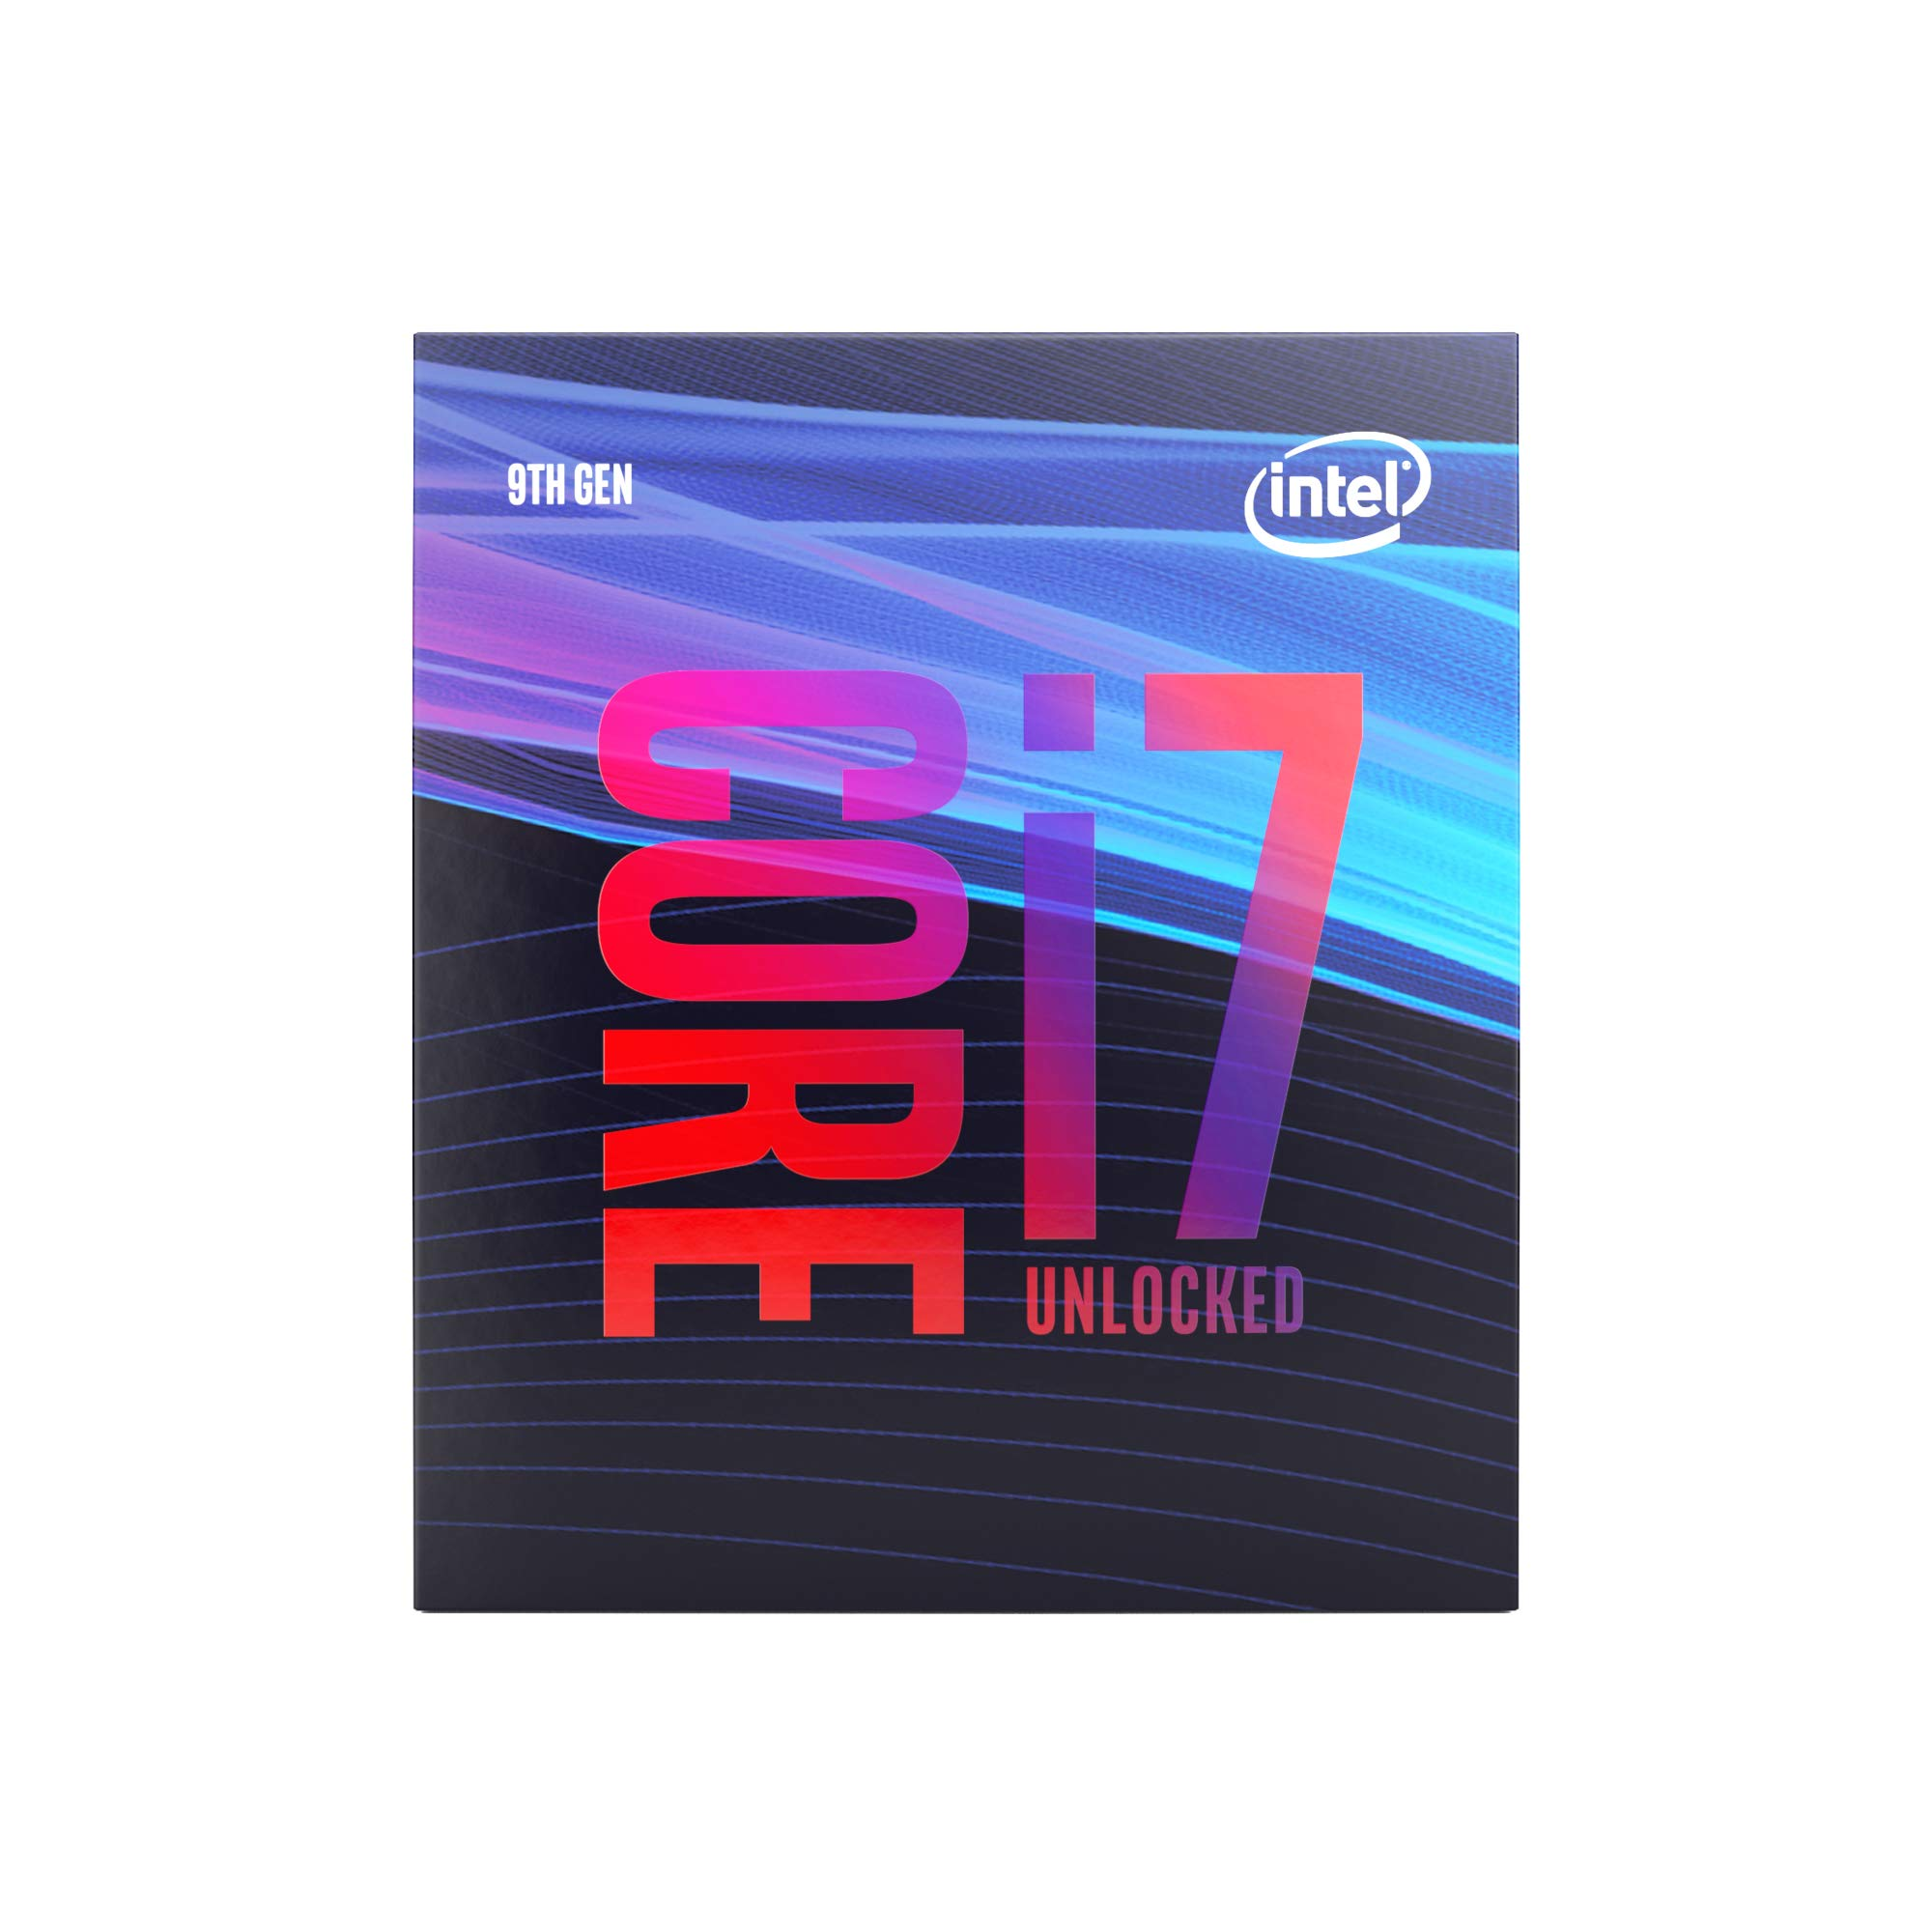 Intel Core i7-9700K 8 Cores up to 4.9 GHz Turbo unlocked LGA